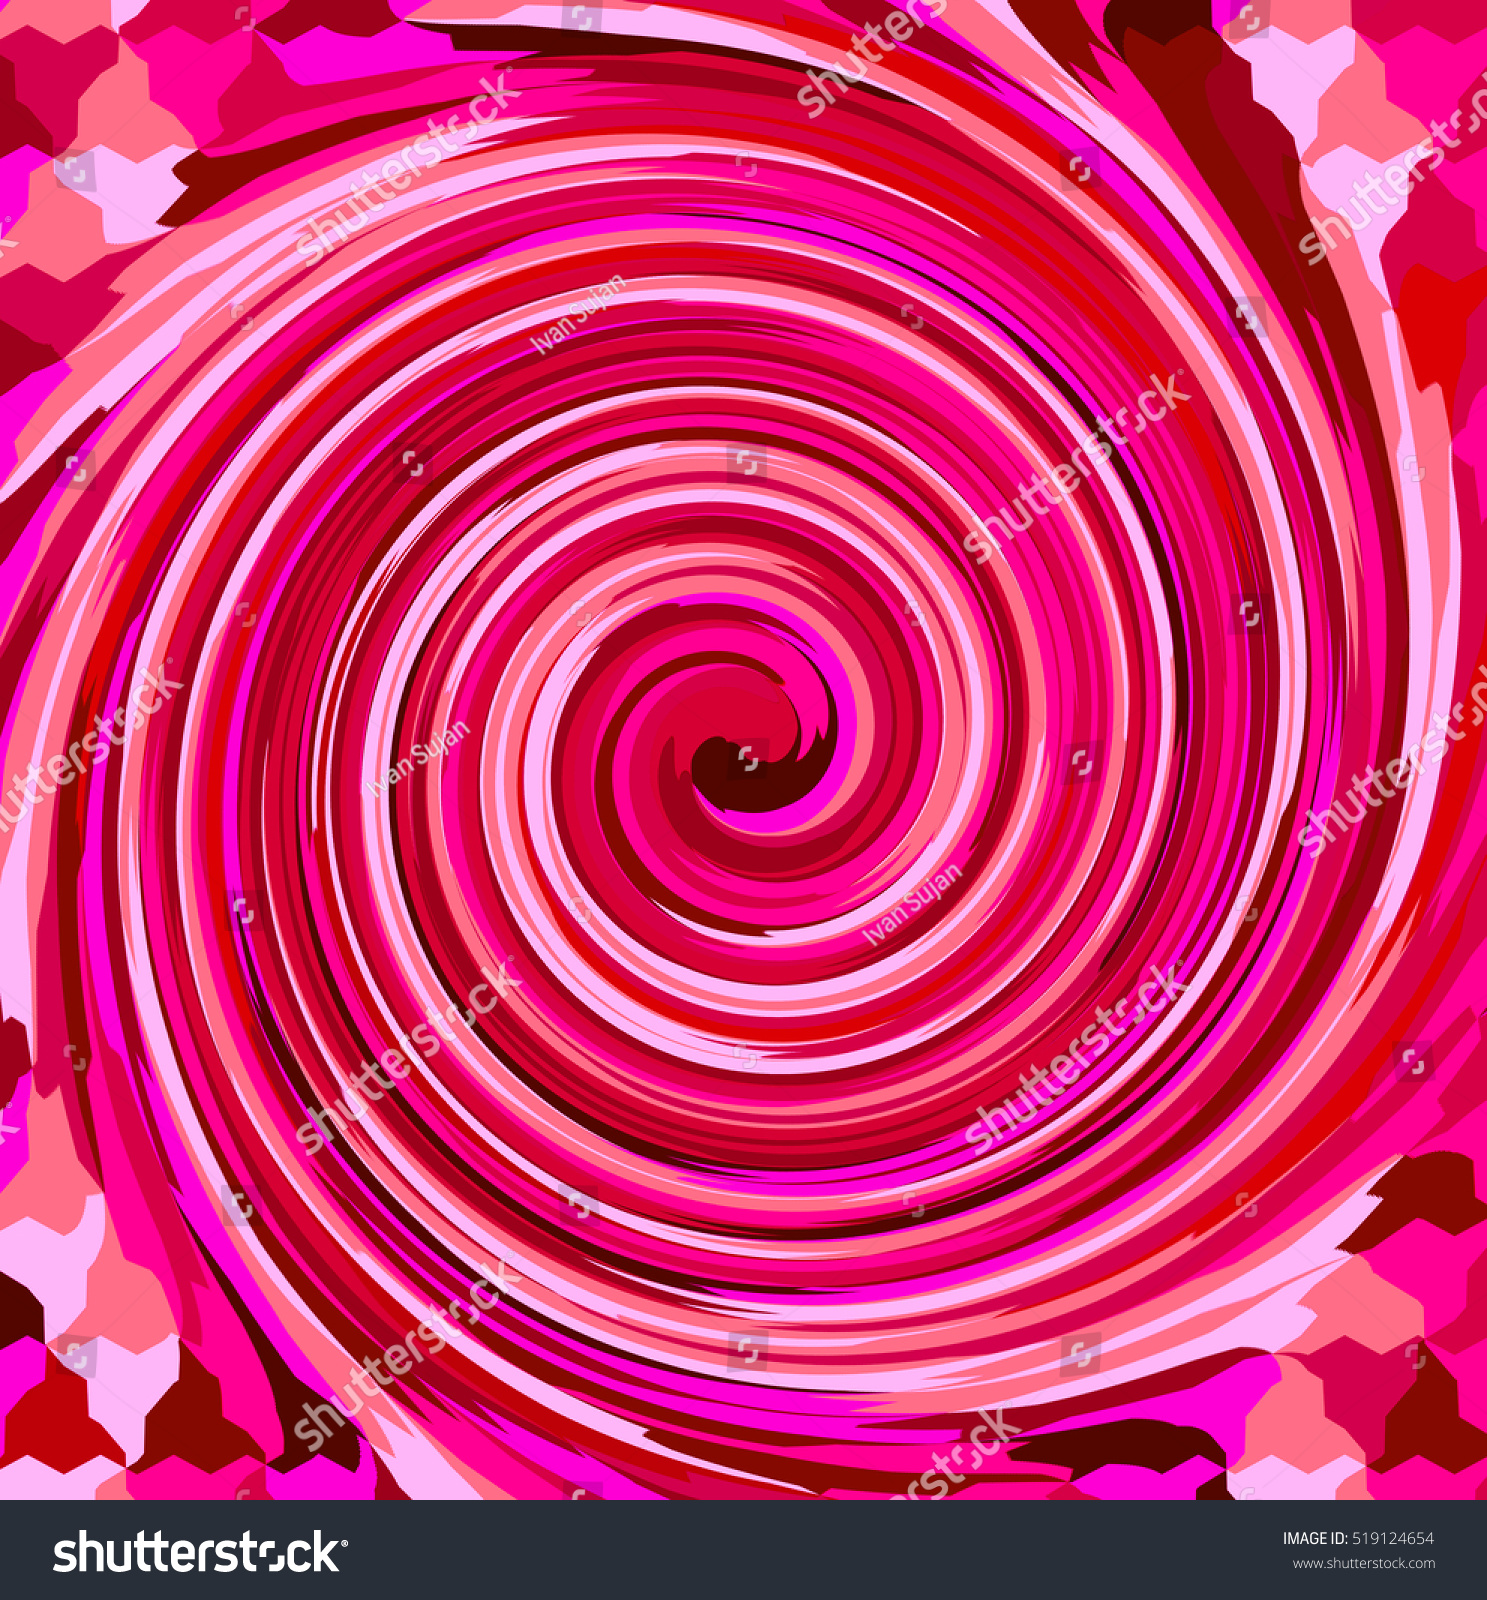 Abstract Spiral Hd Wallpapers